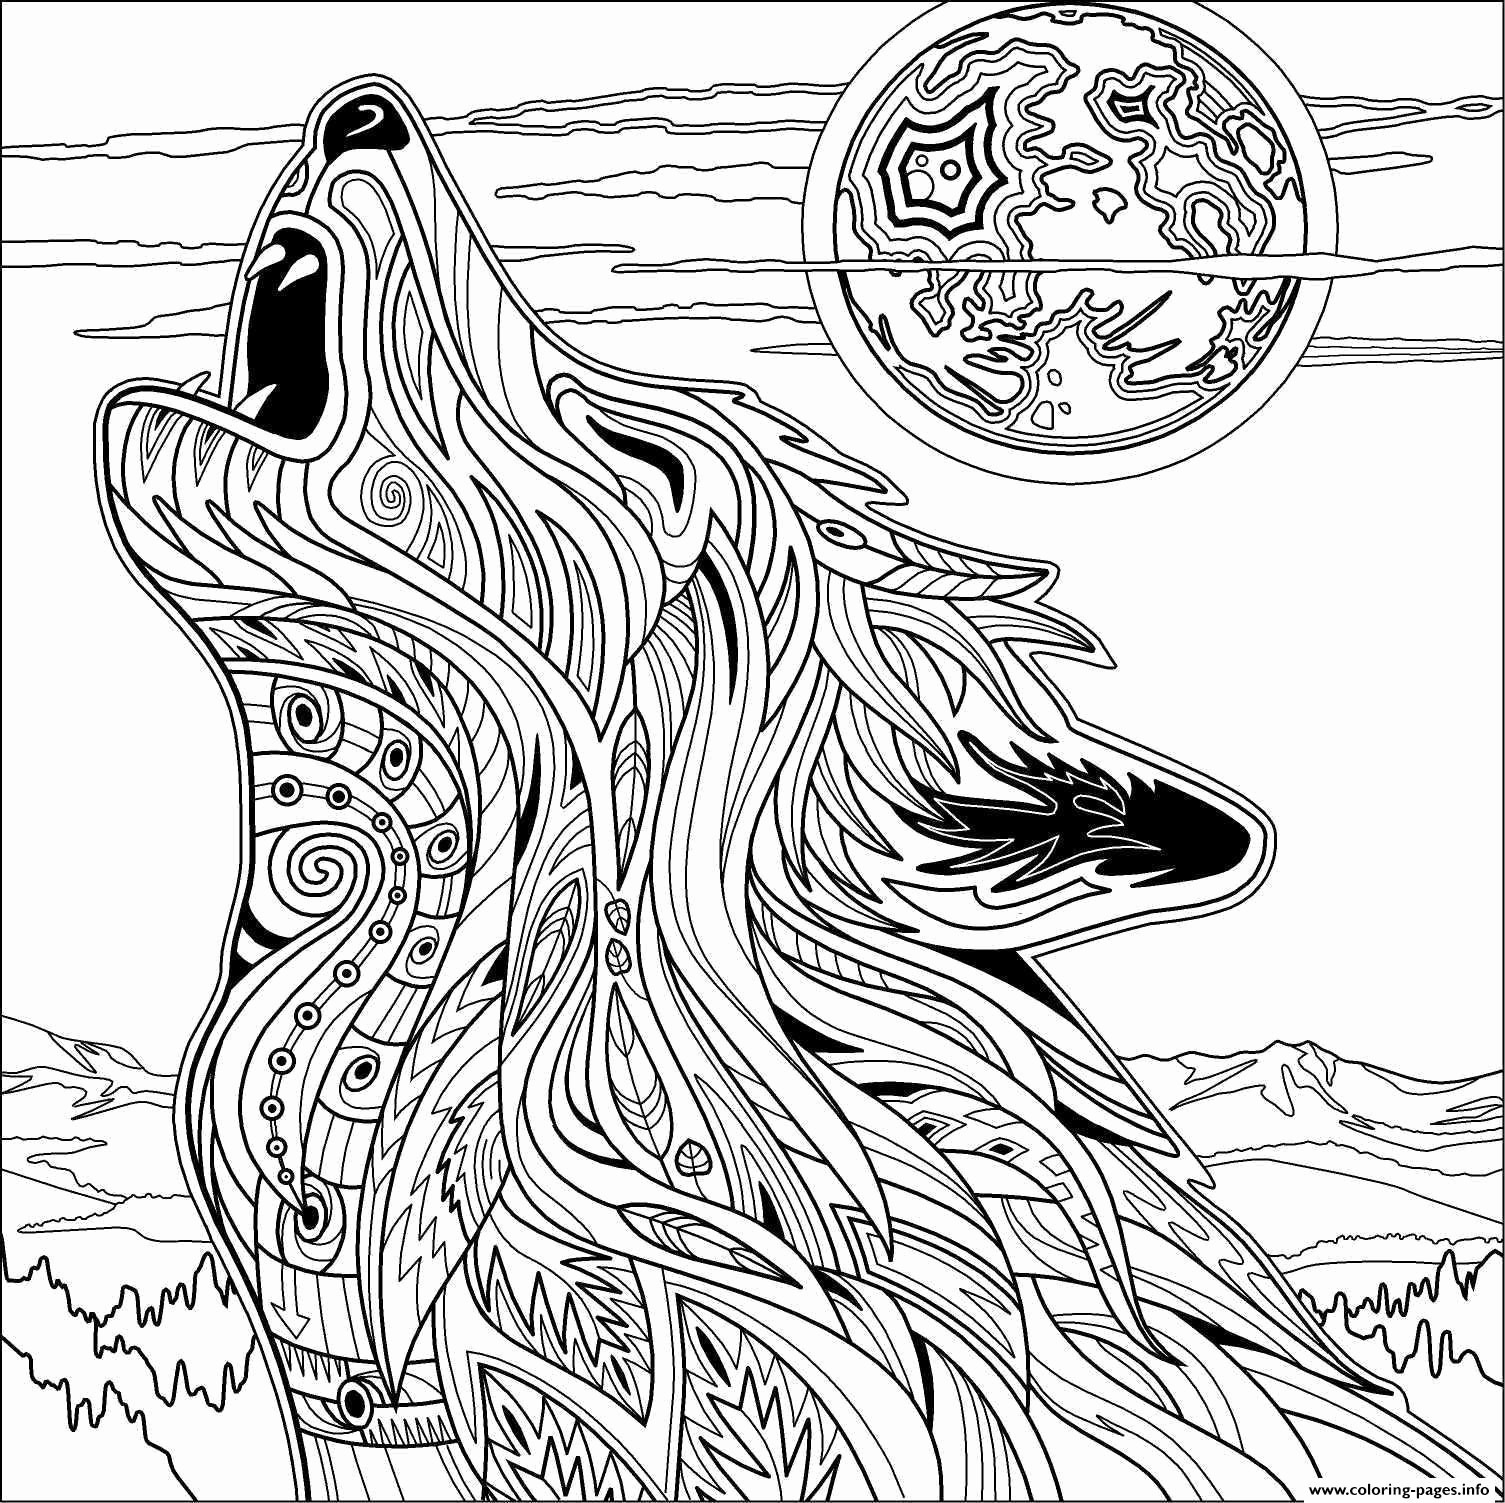 Printable Coloring Pages Of Wolves  Download 3k - Free For kids